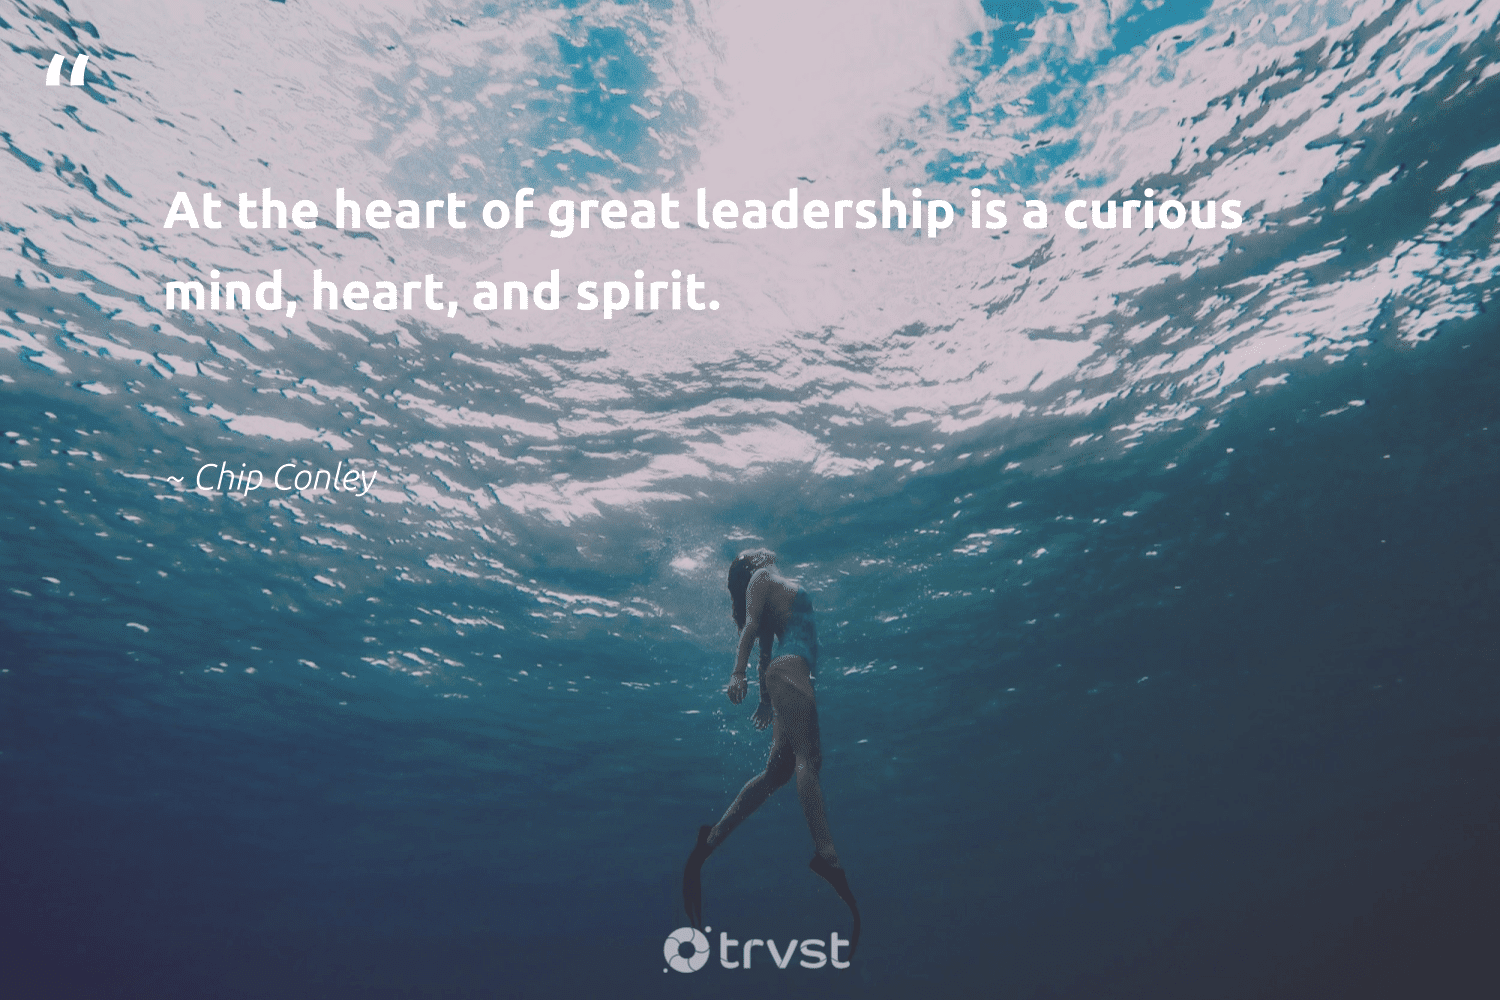 """""""At the heart of great leadership is a curious mind, heart, and spirit.""""  - Chip Conley #trvst #quotes #leadership #leadershipdevelopment #softskills #futureofwork #collectiveaction #leadershipqualities #begreat #nevergiveup #ecoconscious #leadershipskills"""